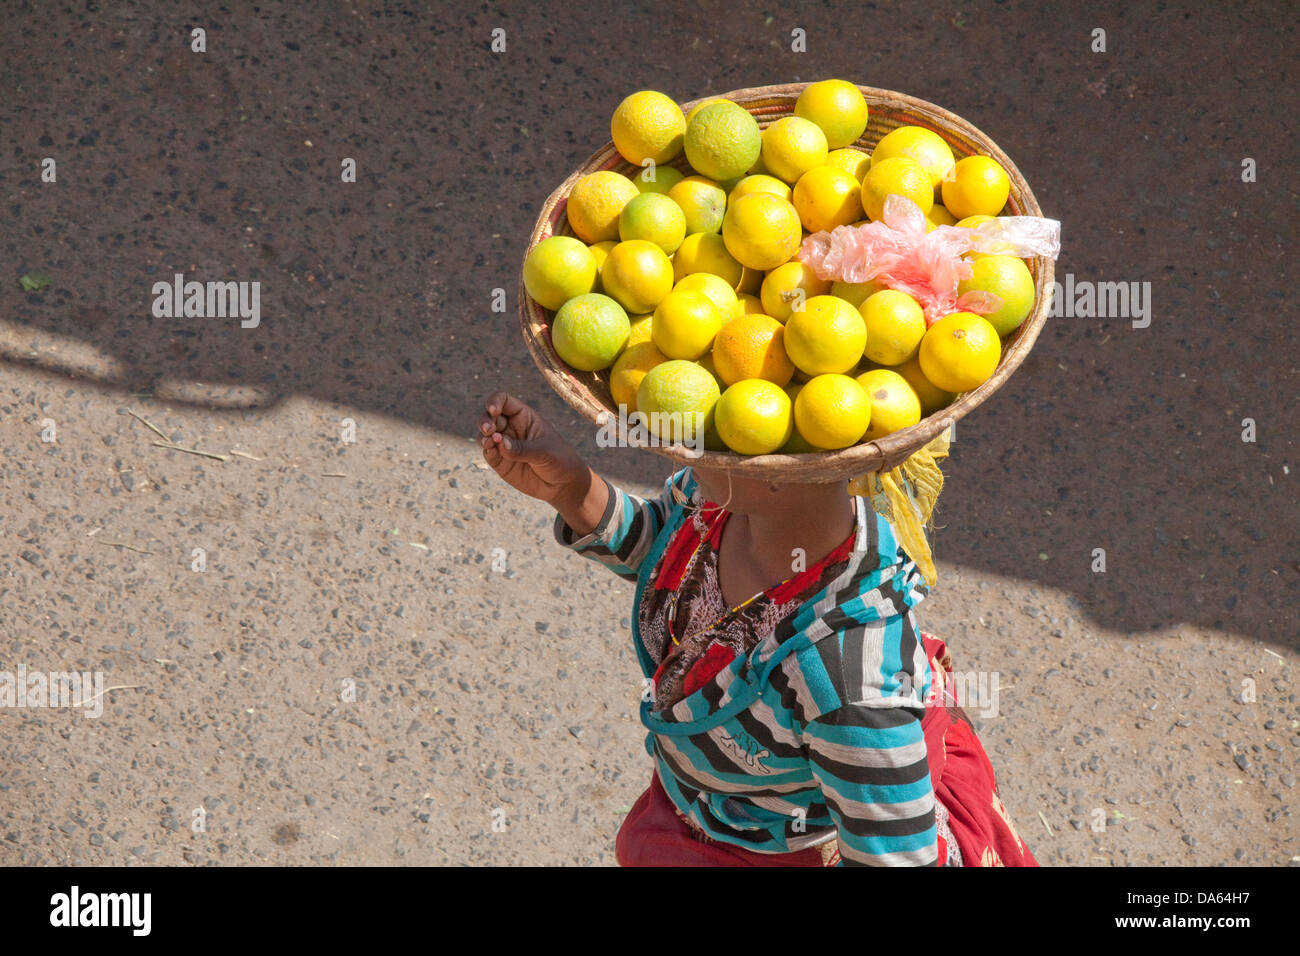 People, Harar, Ethiopia, UNESCO, world cultural heritage, Africa, town, city, fruits, vegetables, load, head, carry, - Stock Image